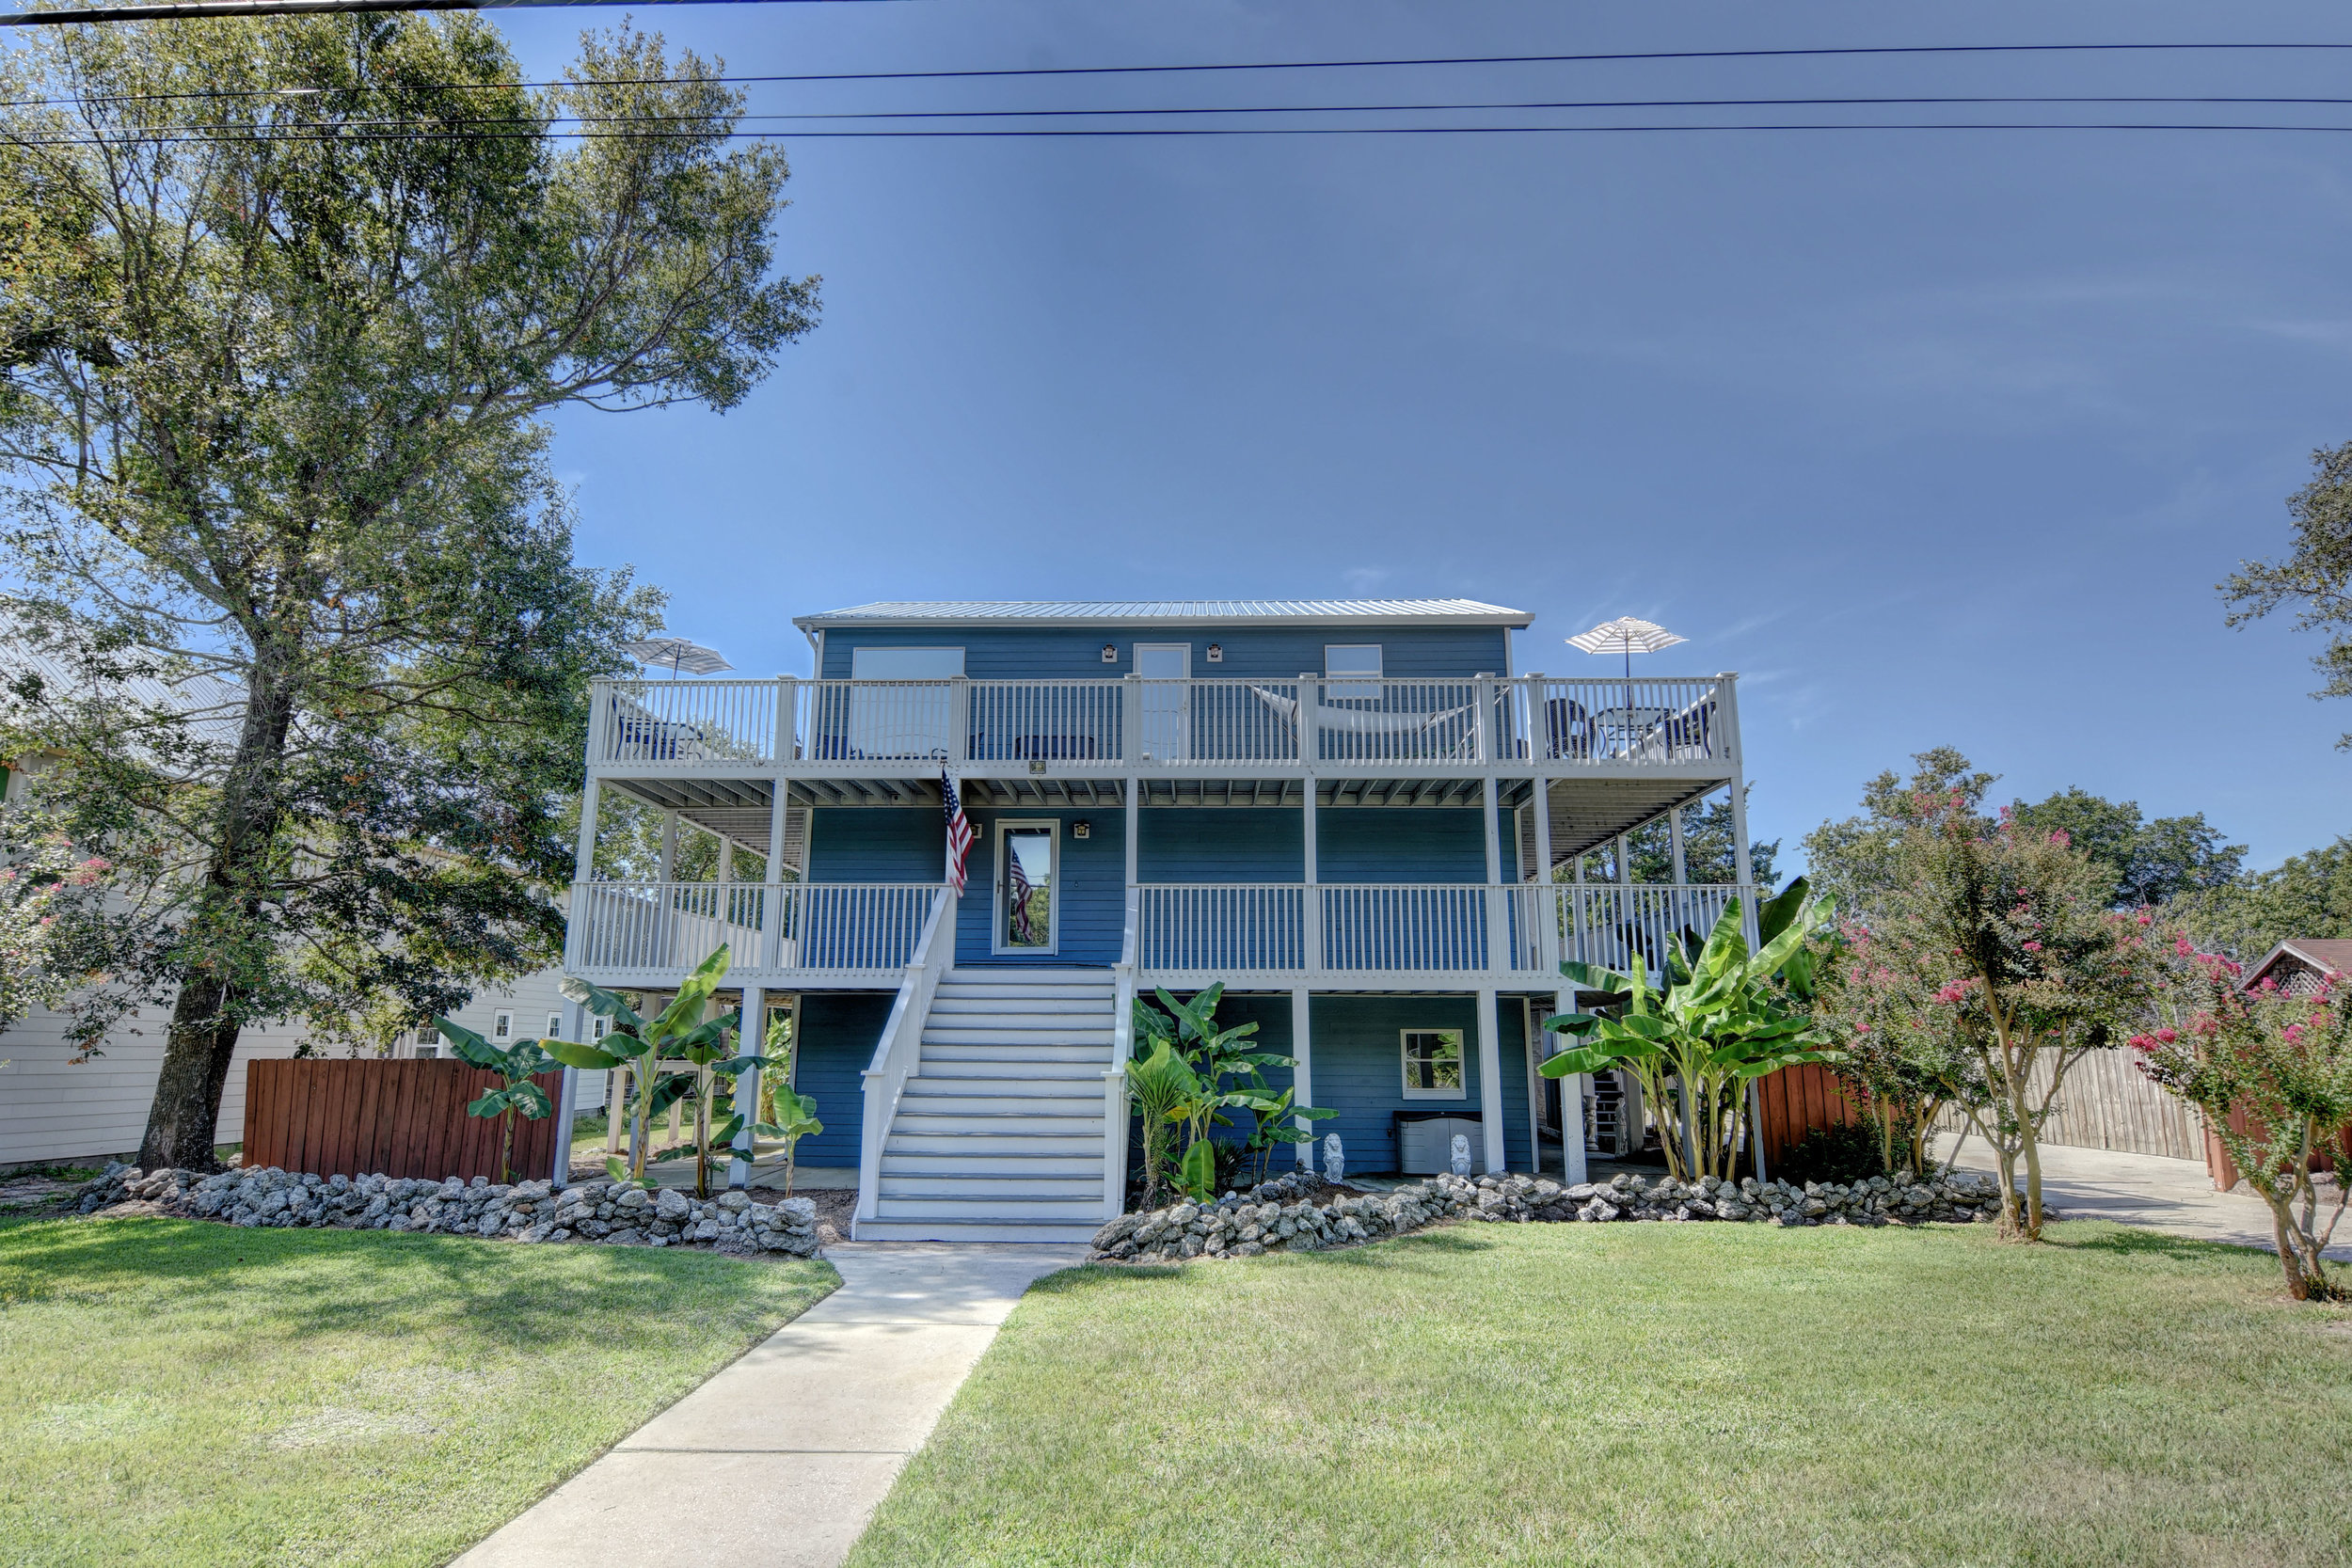 709 Cape Fear Blvd Carolina-print-002-39-DSC 1070 1 2-4200x2801-300dpi.jpg